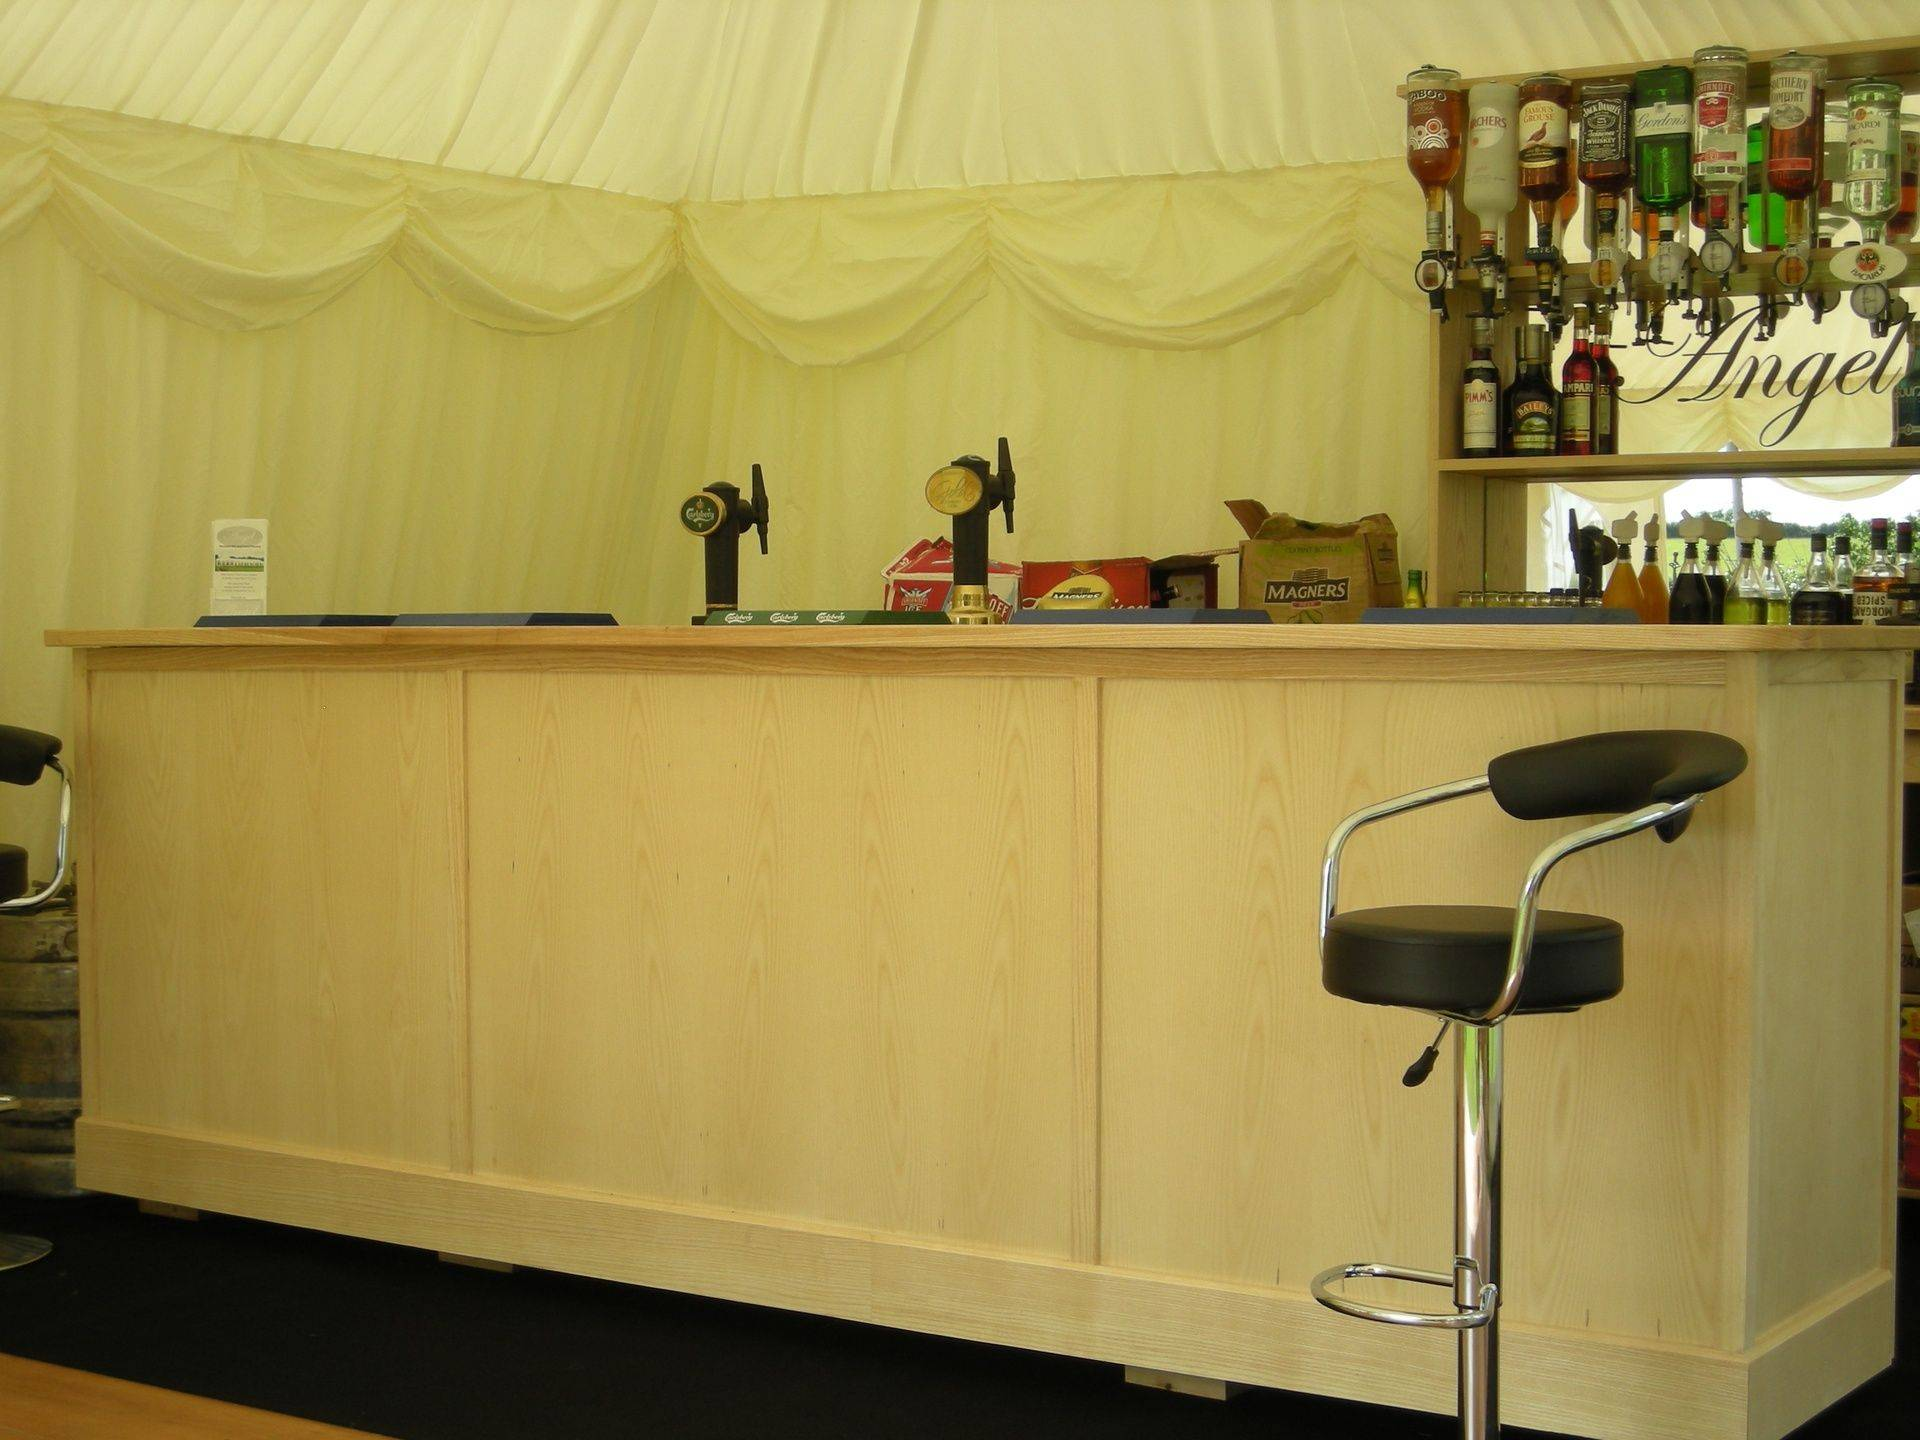 Main Staffed bar marquee